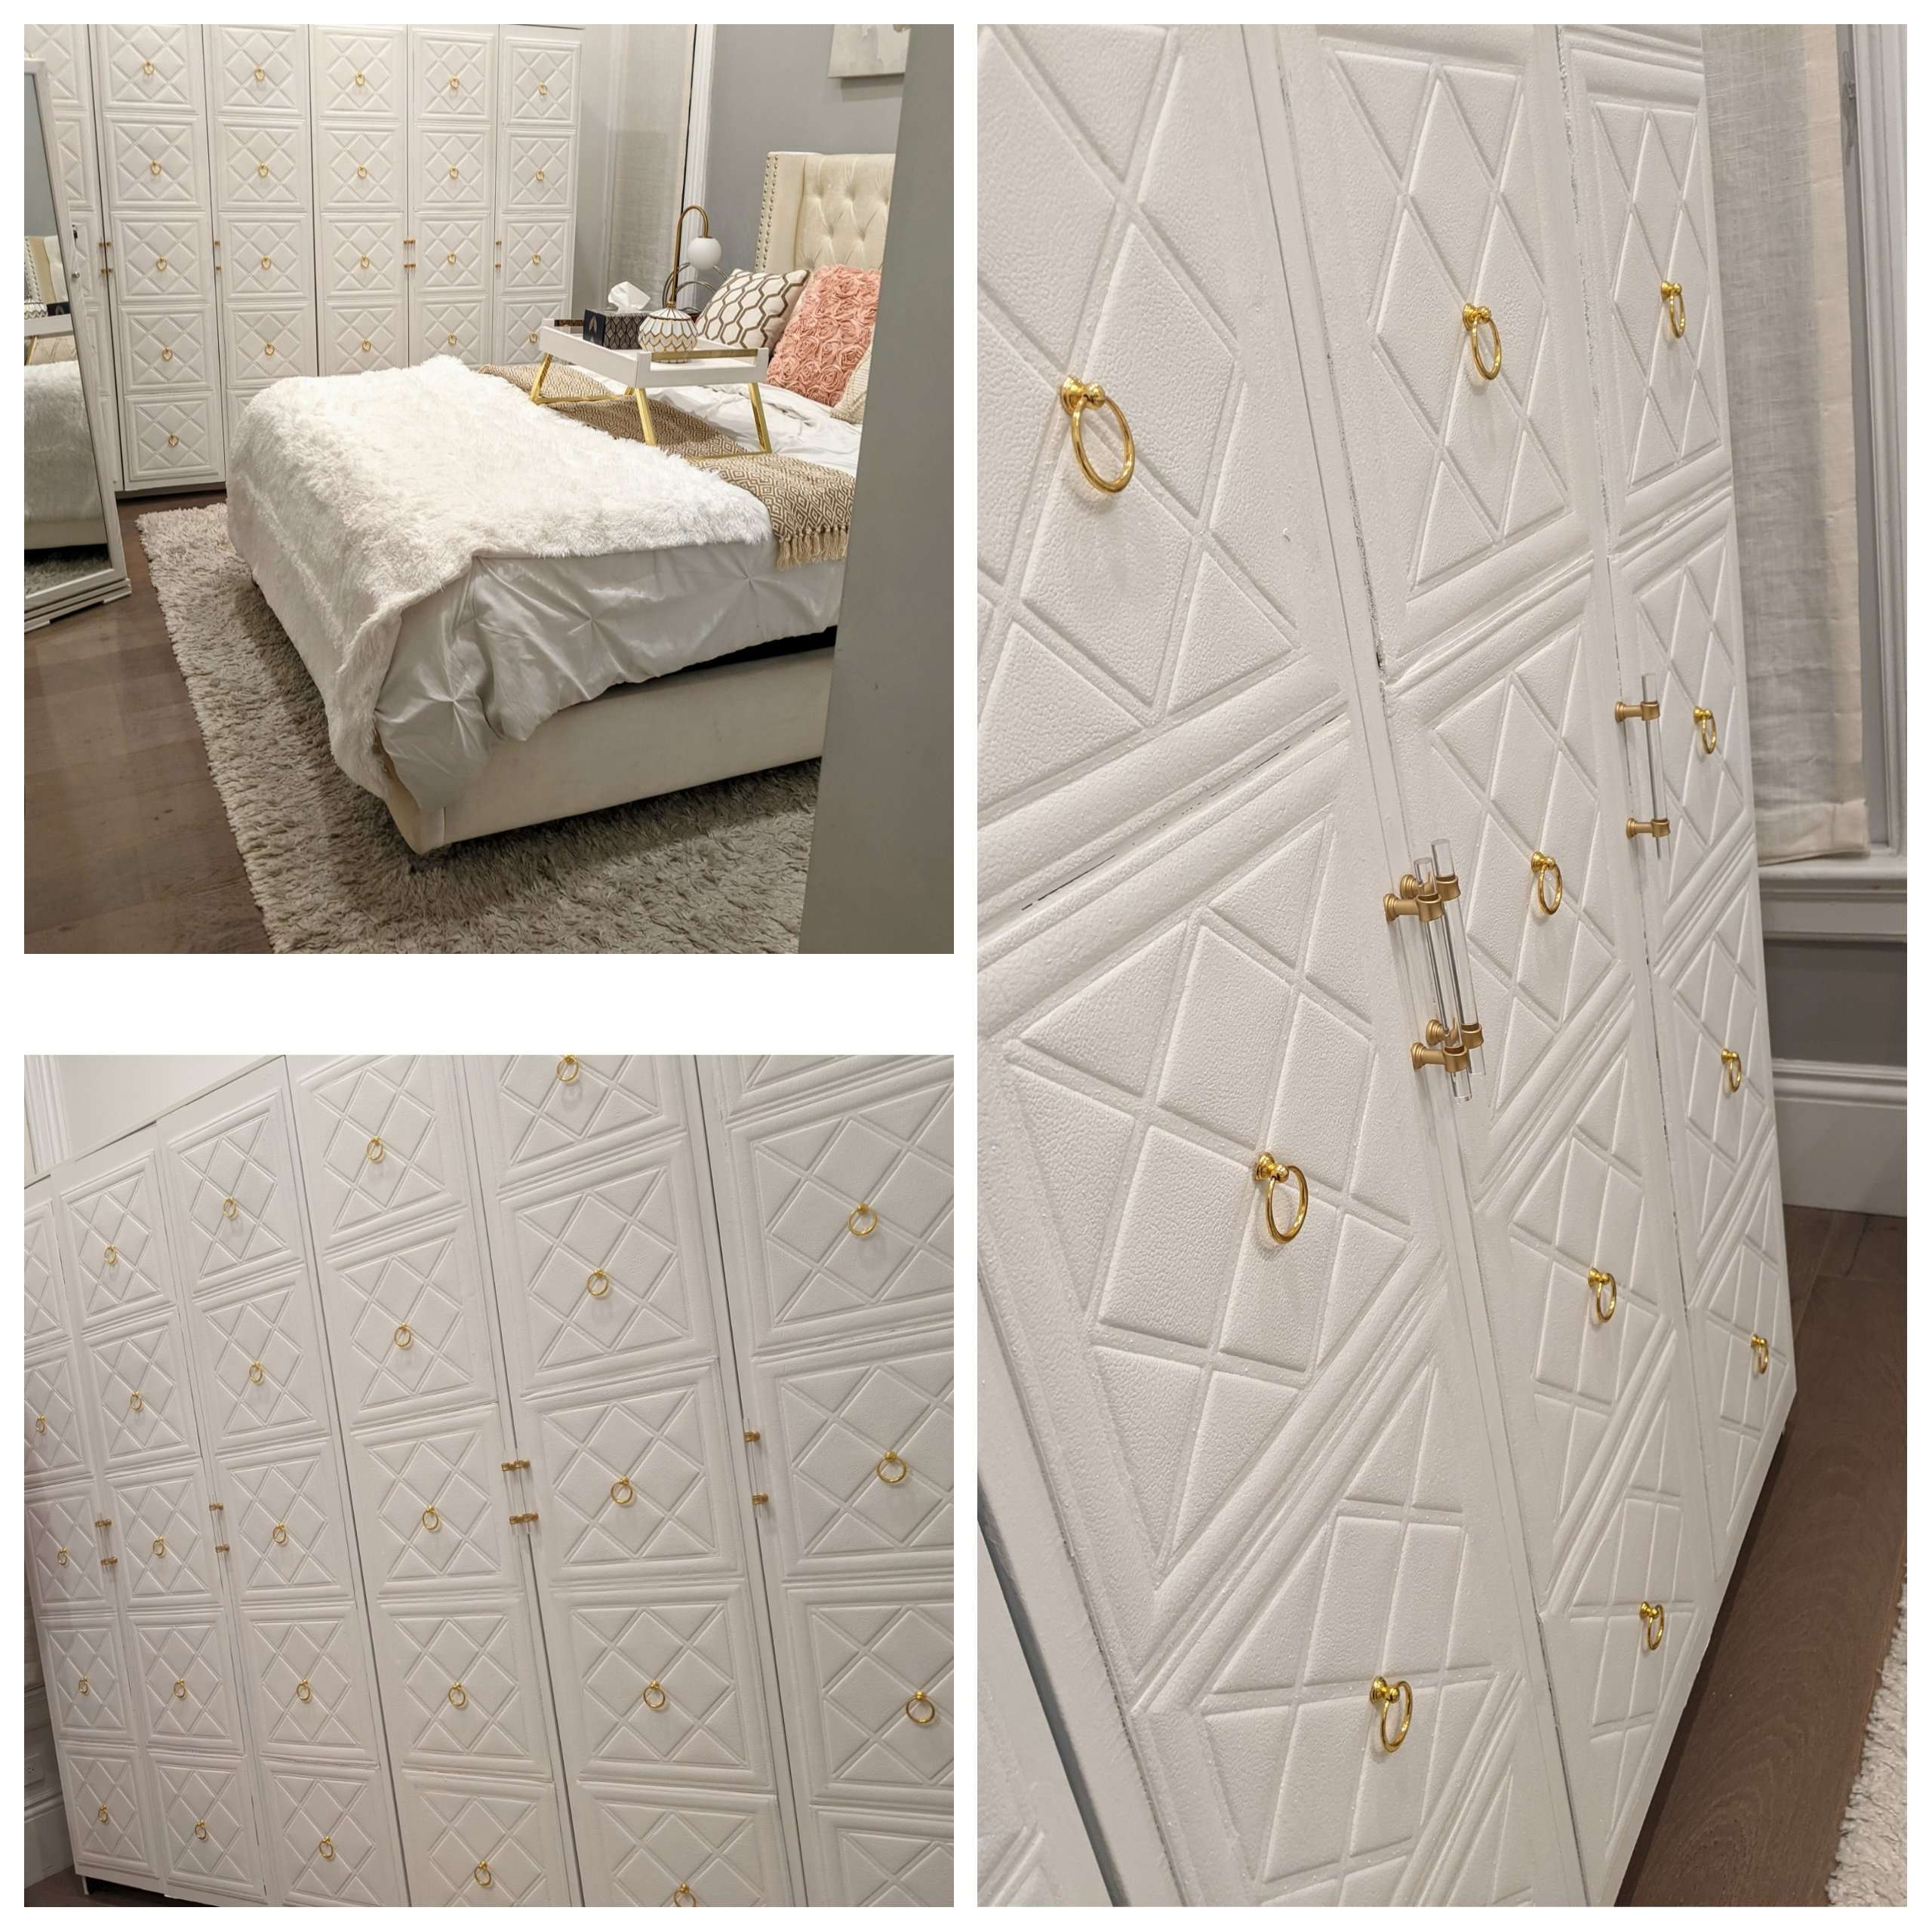 Beginner IKEA Wardrobe Makeover Hack From The Least DIY Person on Planet Earth